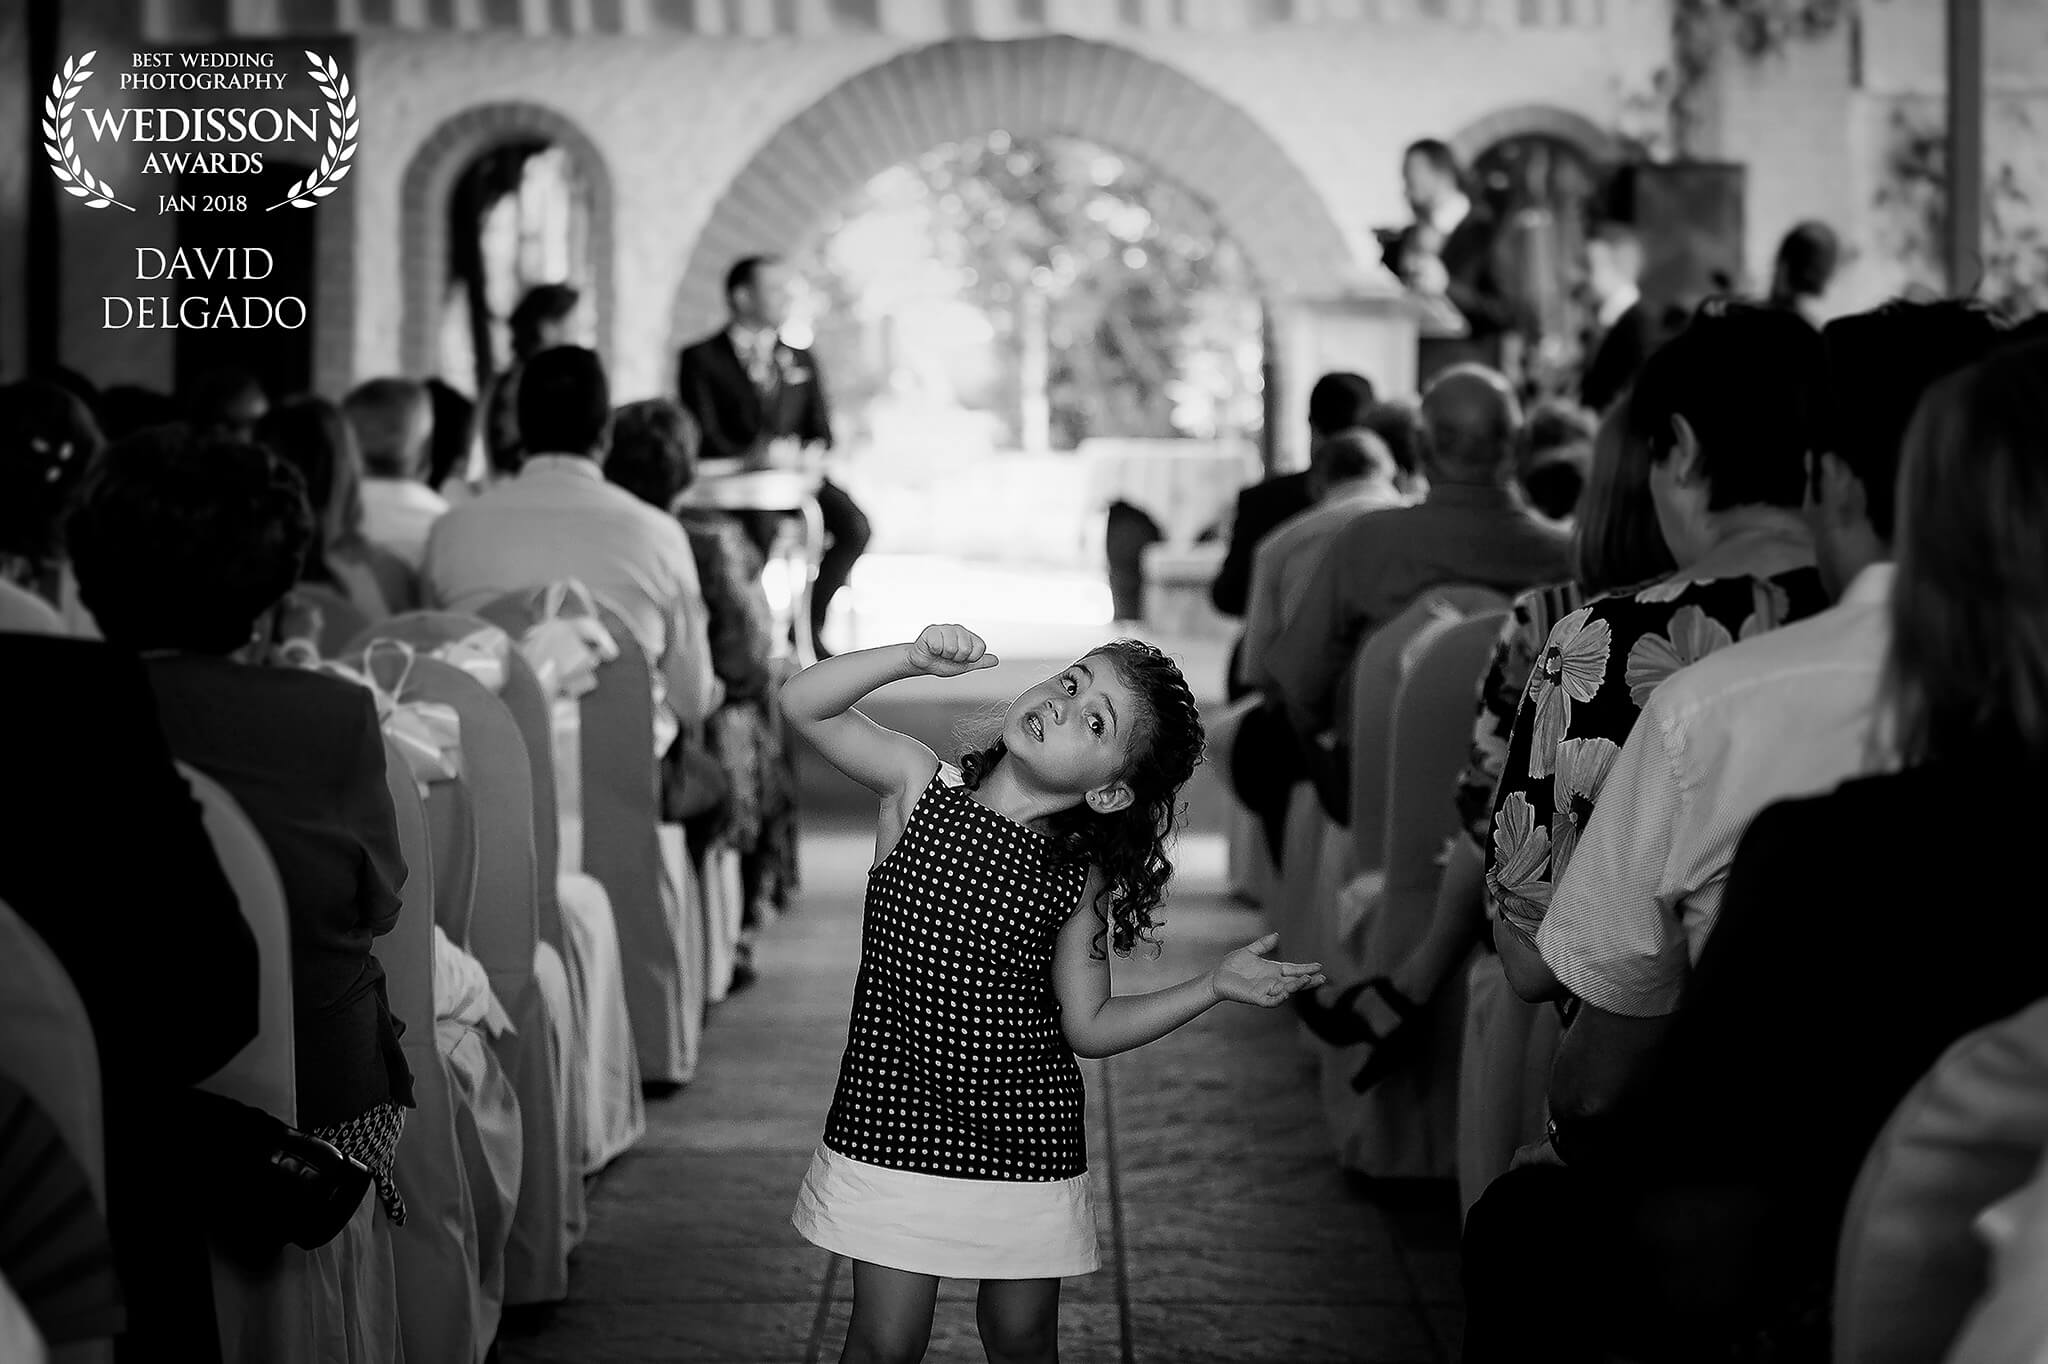 David Delgado Wedding Photography – Wedisson Awards 6